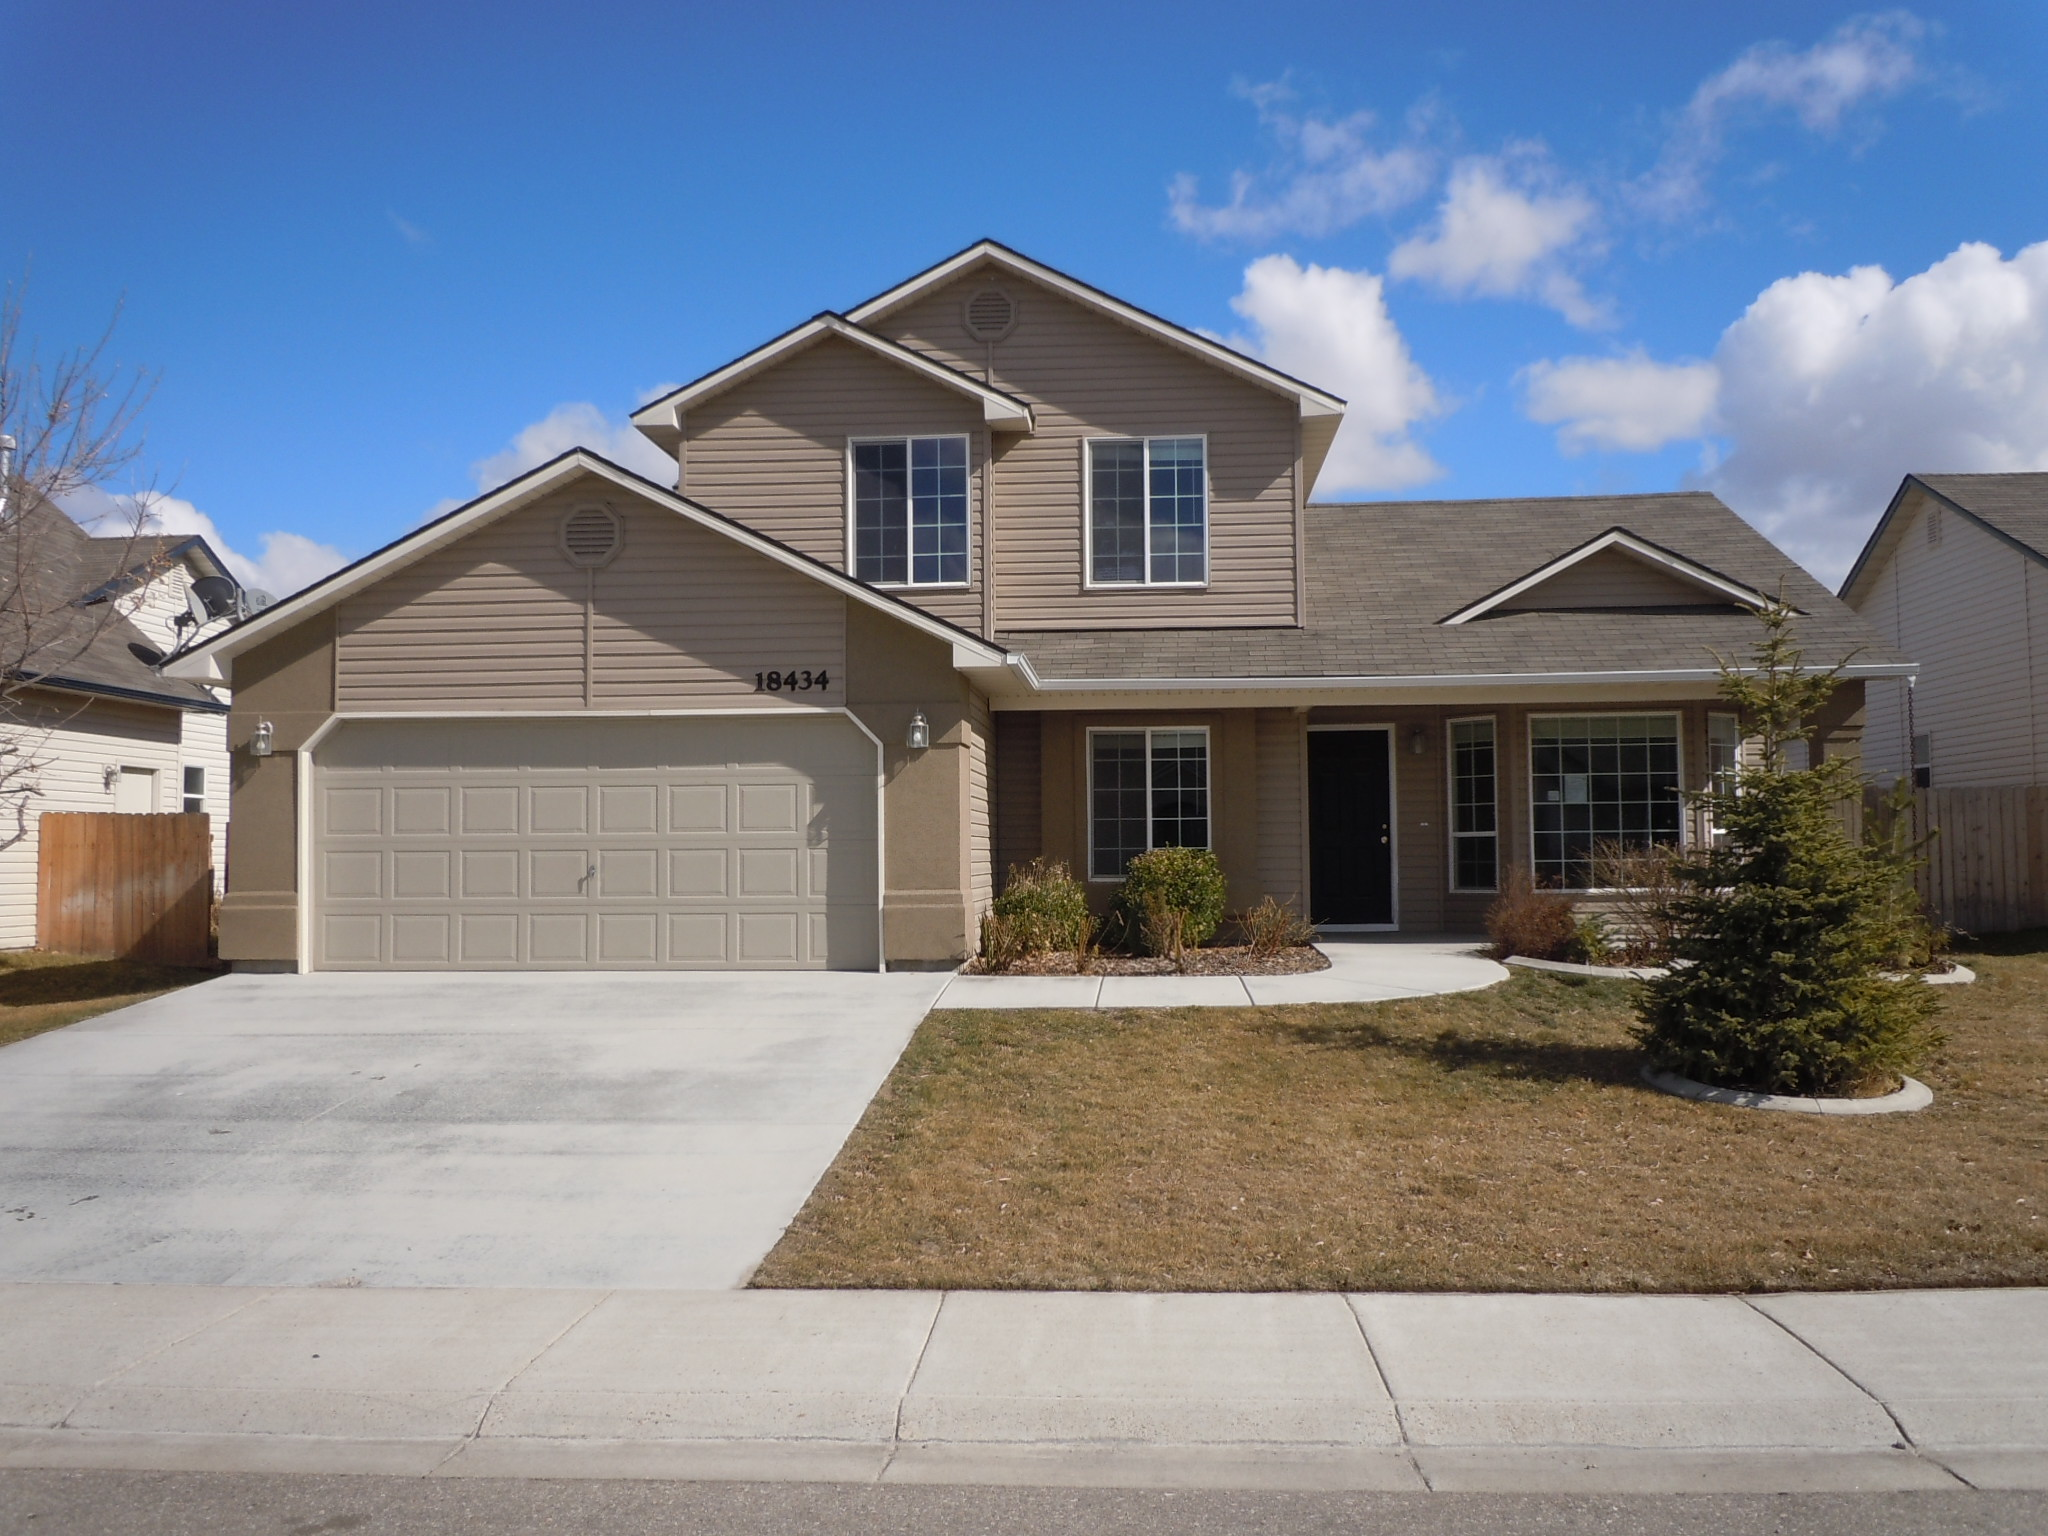 move in ready hud home for sale trustidaho